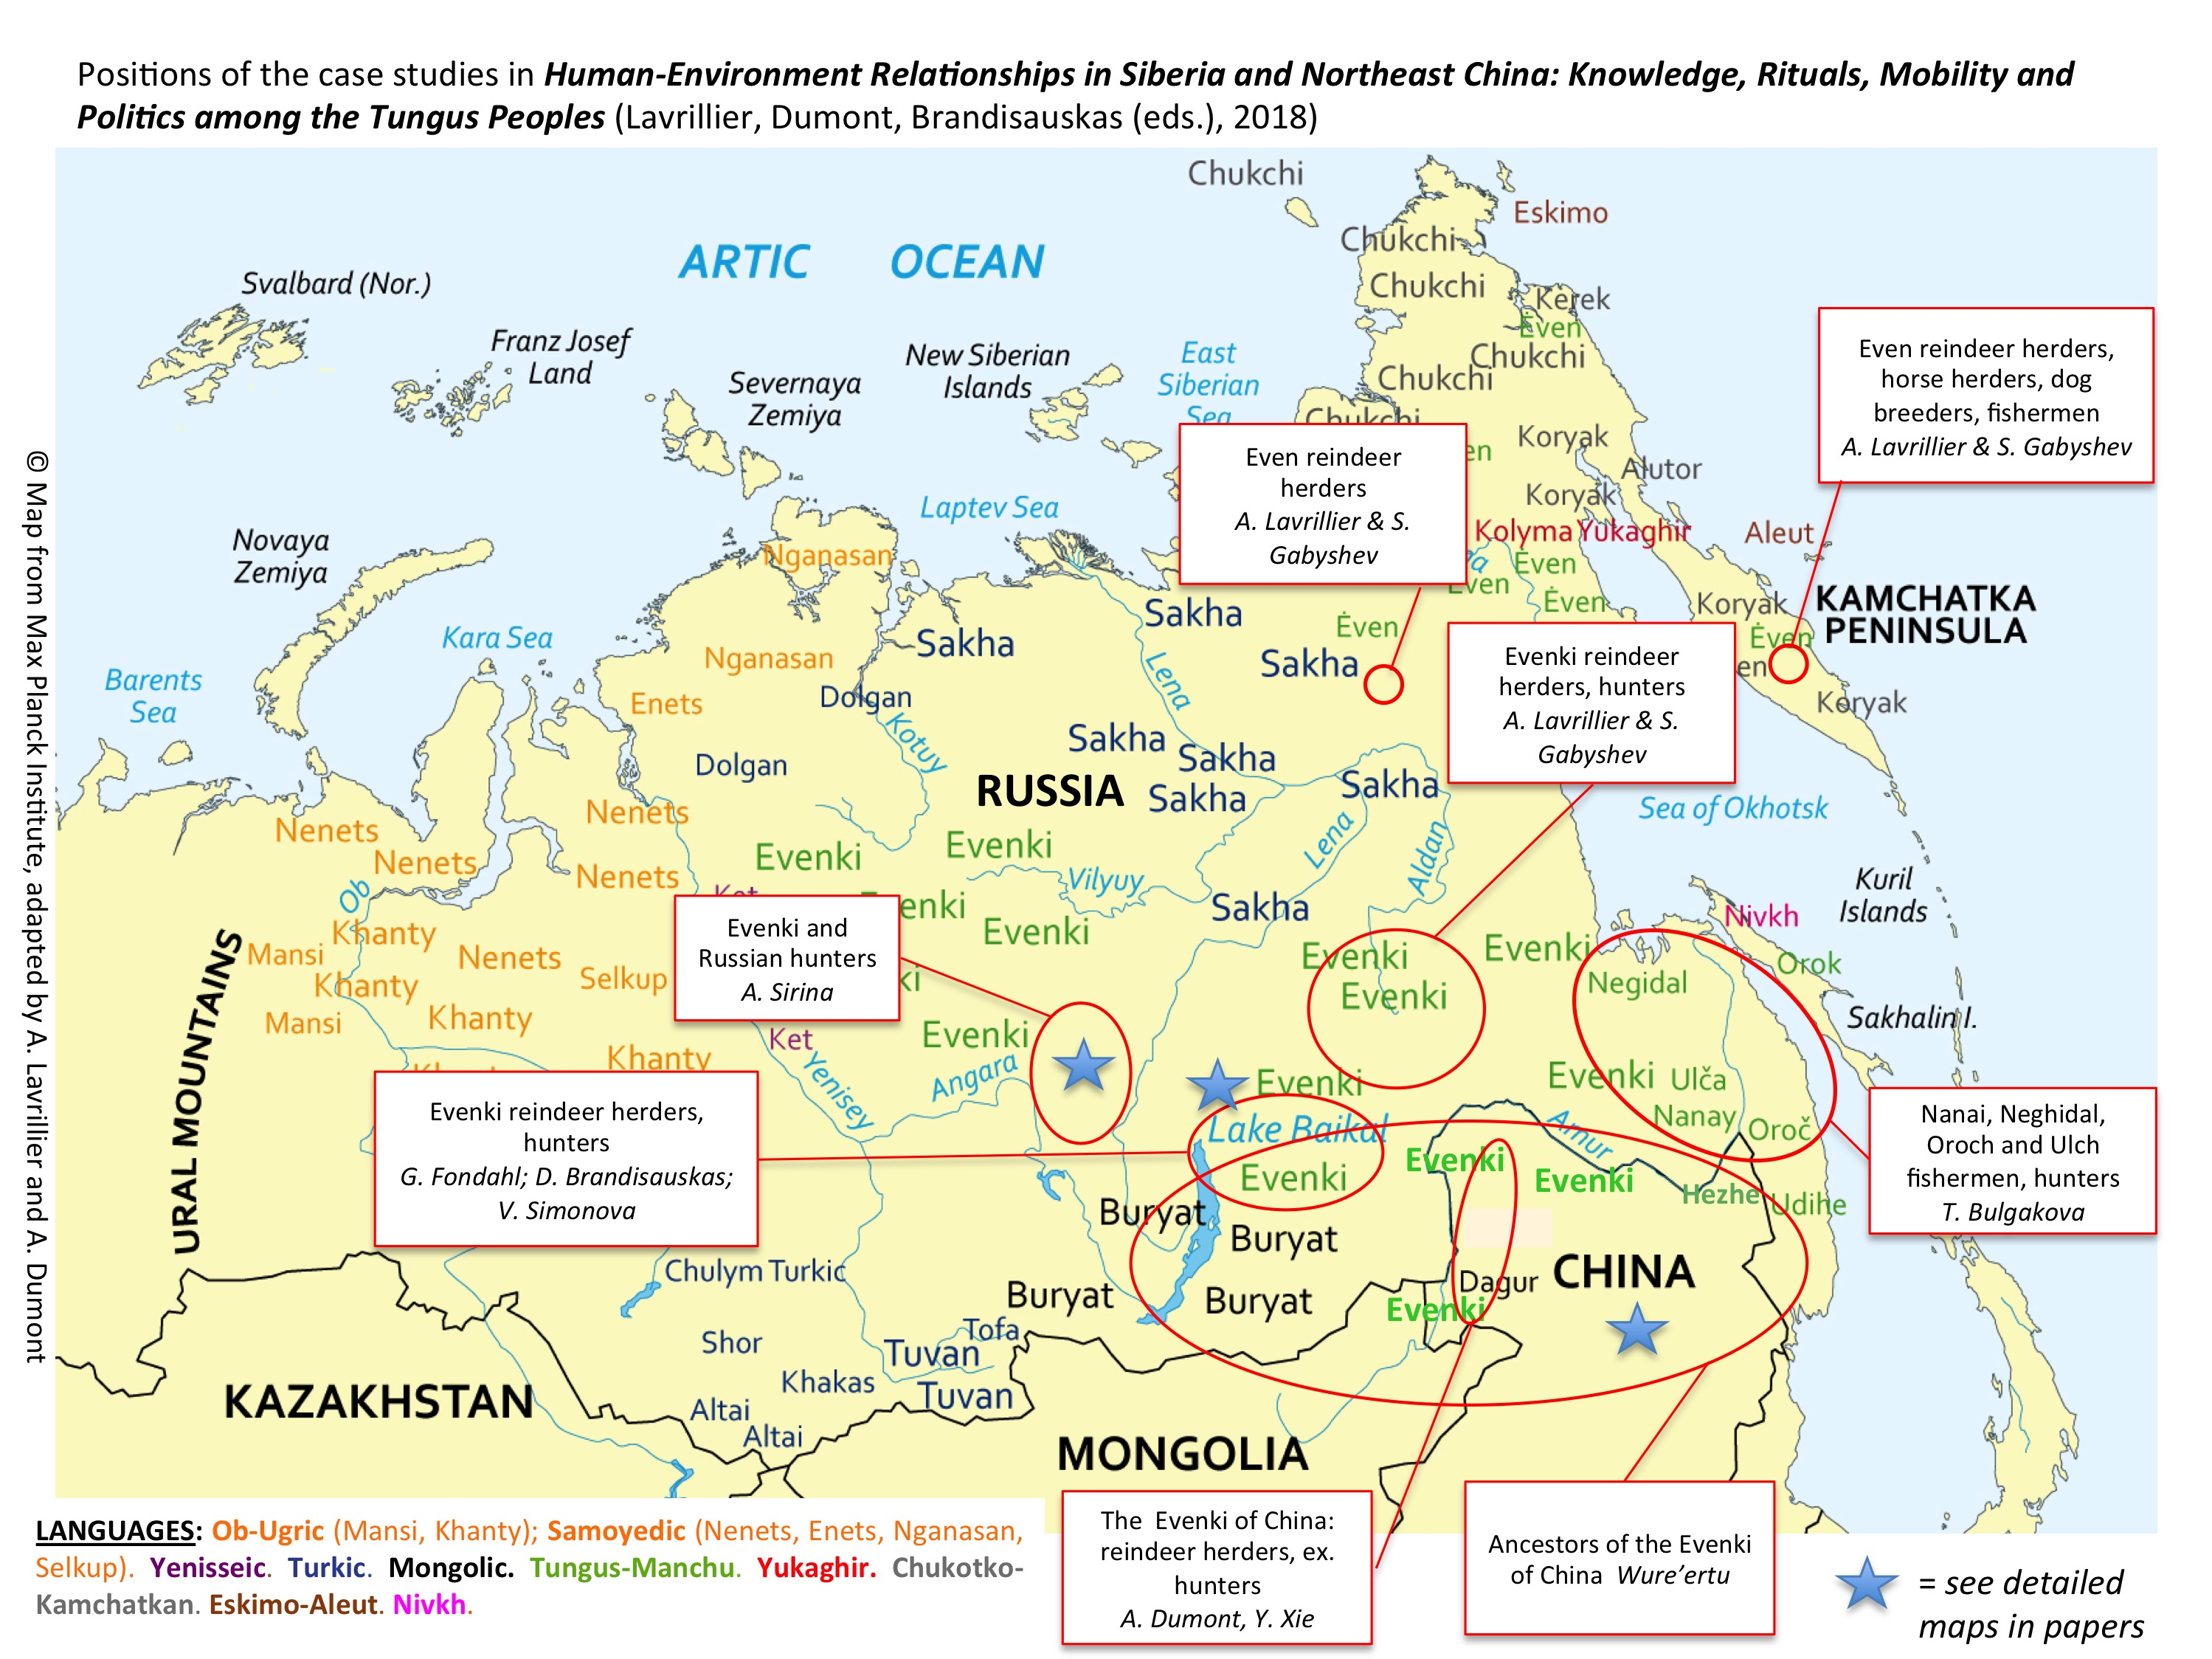 Human Nature Relationships In The Tungus Societies Of Siberia And Northeast China